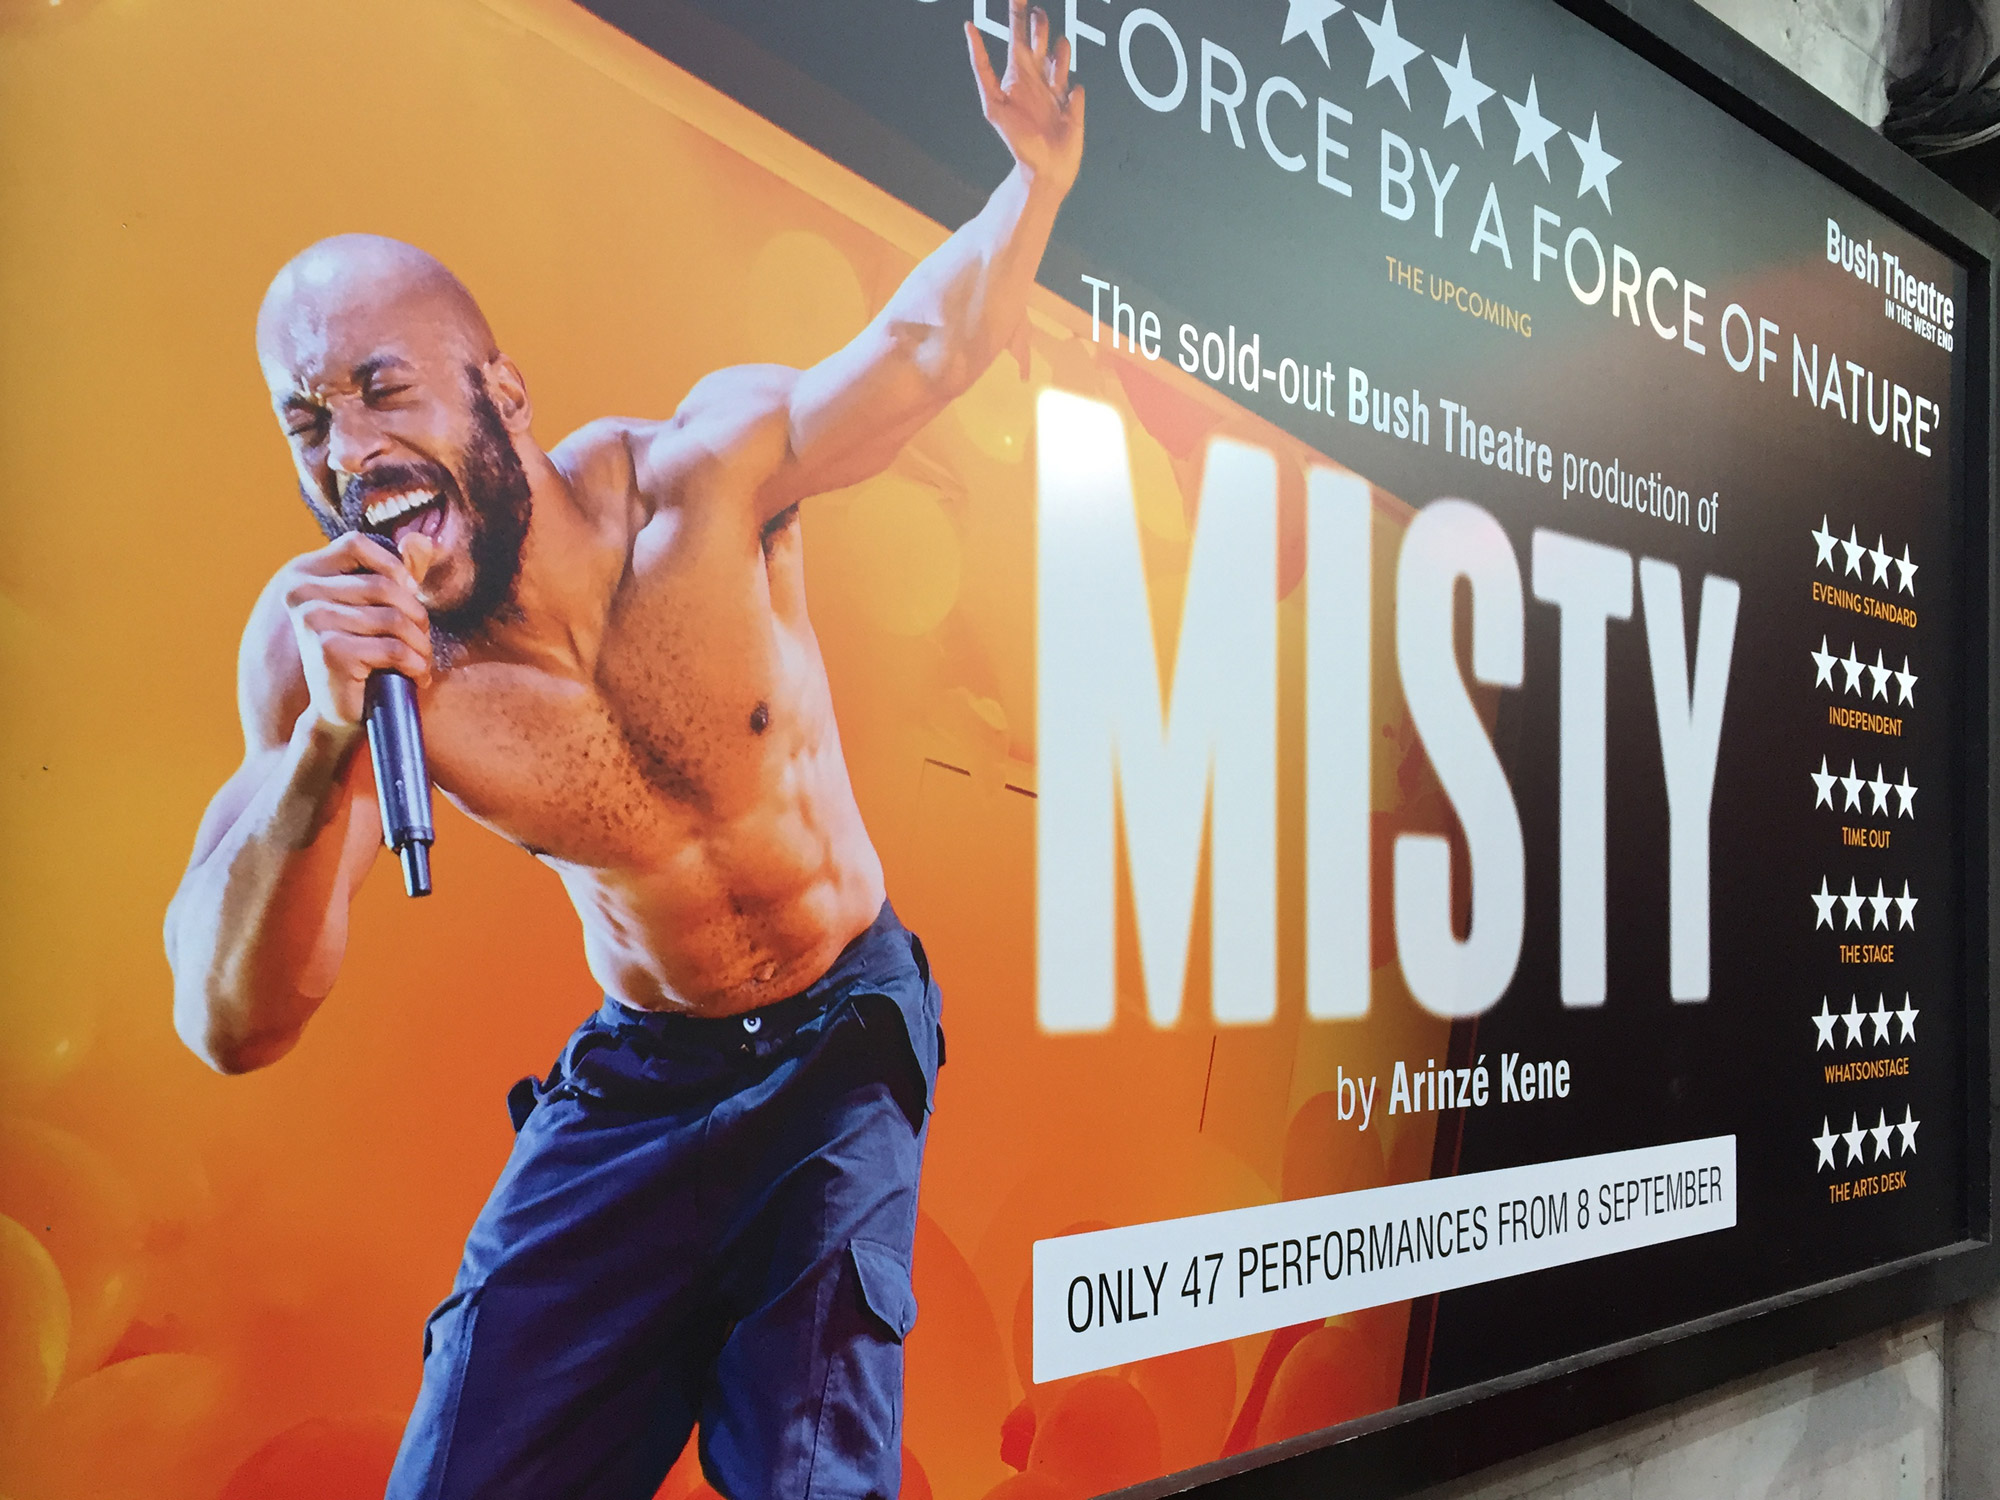 On an orange background, a landscape poster shows a muscly man, with bald head and beard, singing into a microphone. Beside him is the word MISTY...